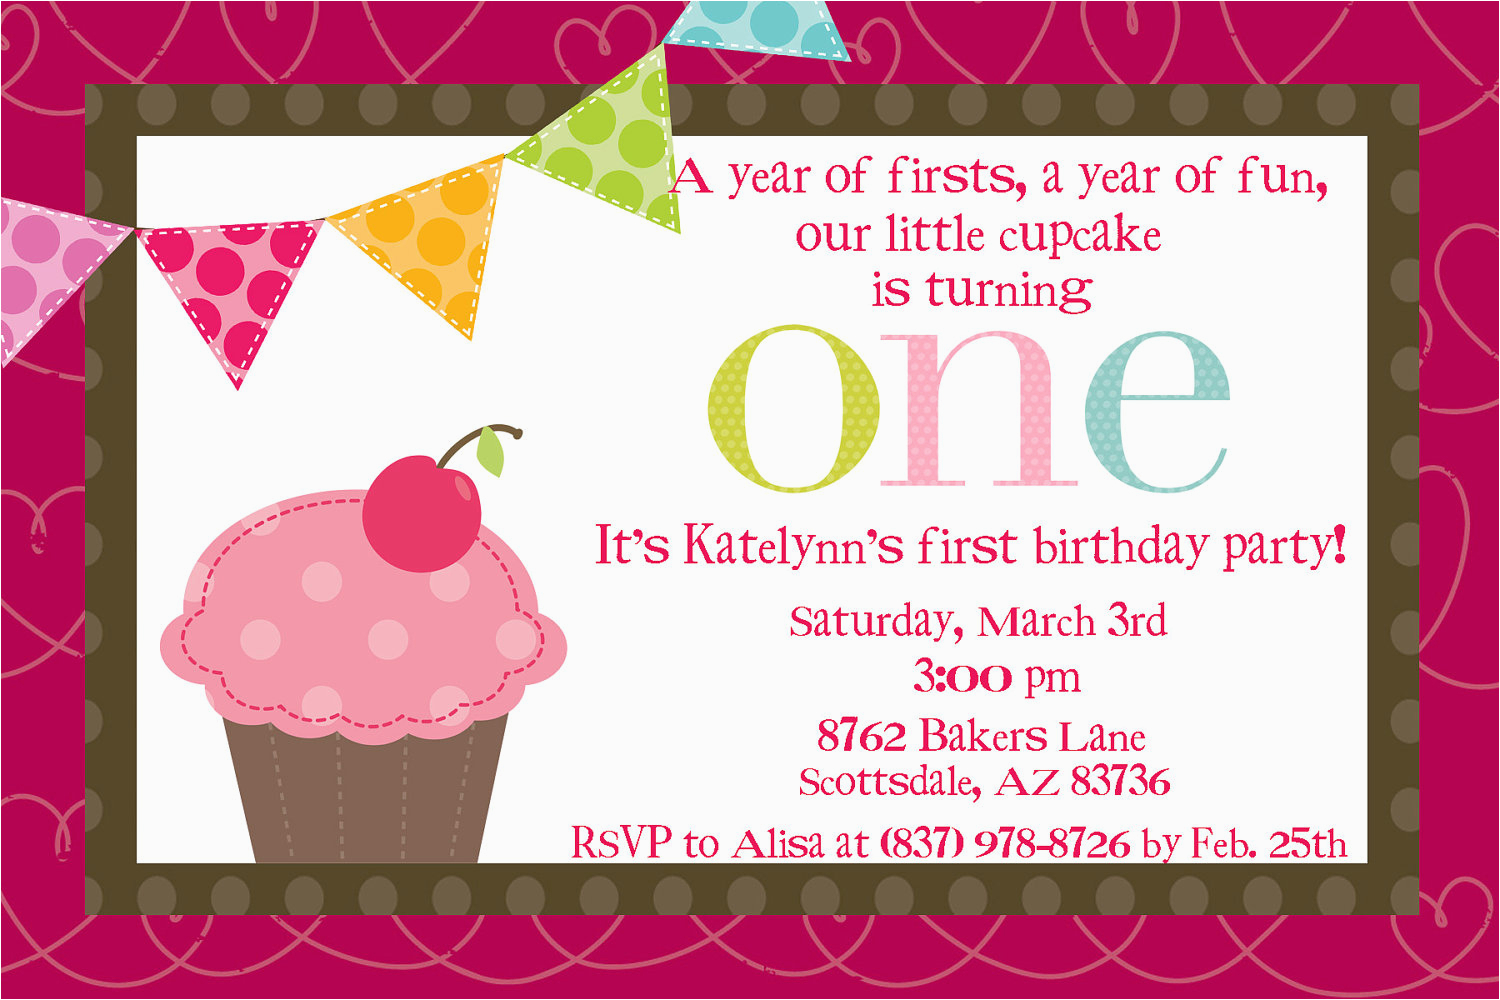 Free E Invitation Cards For Birthday Email Invitations Templates Egreeting Ecards